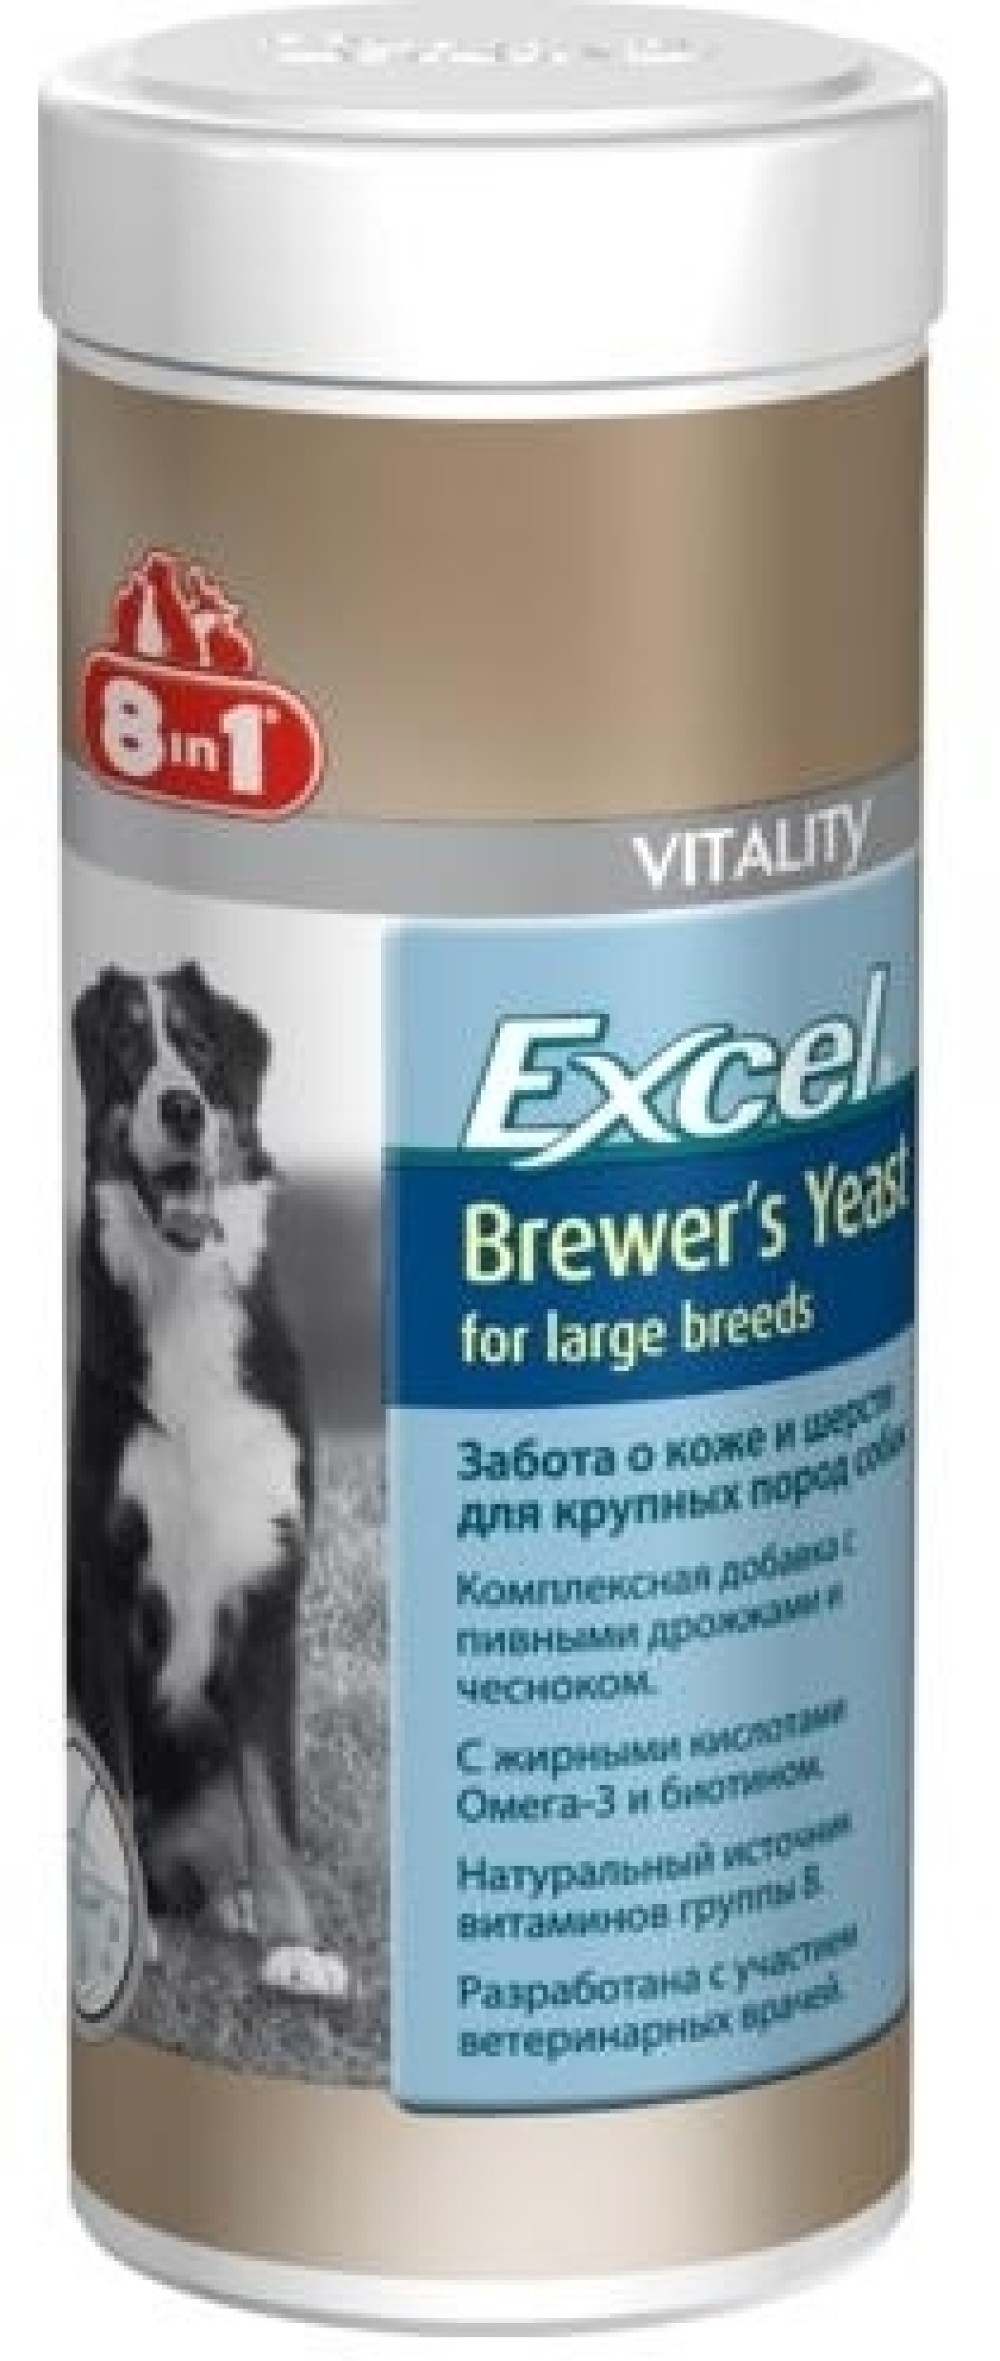 zoo/8in1_Brewers_Yeast_For_Large_Breeds